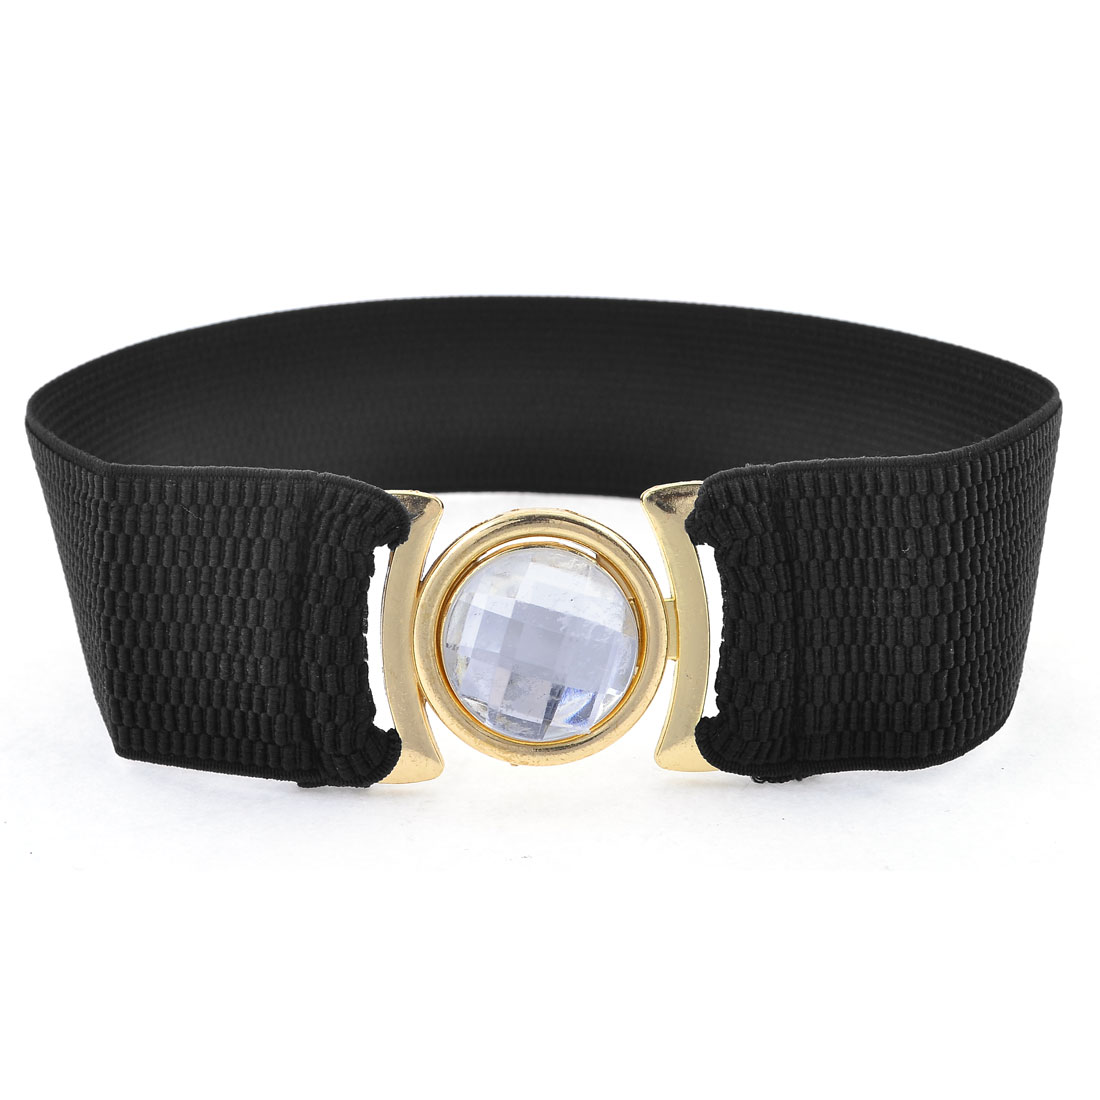 Women Crystal Decor Metal Interlocking Buckle Black Elasticated Waistband Belt